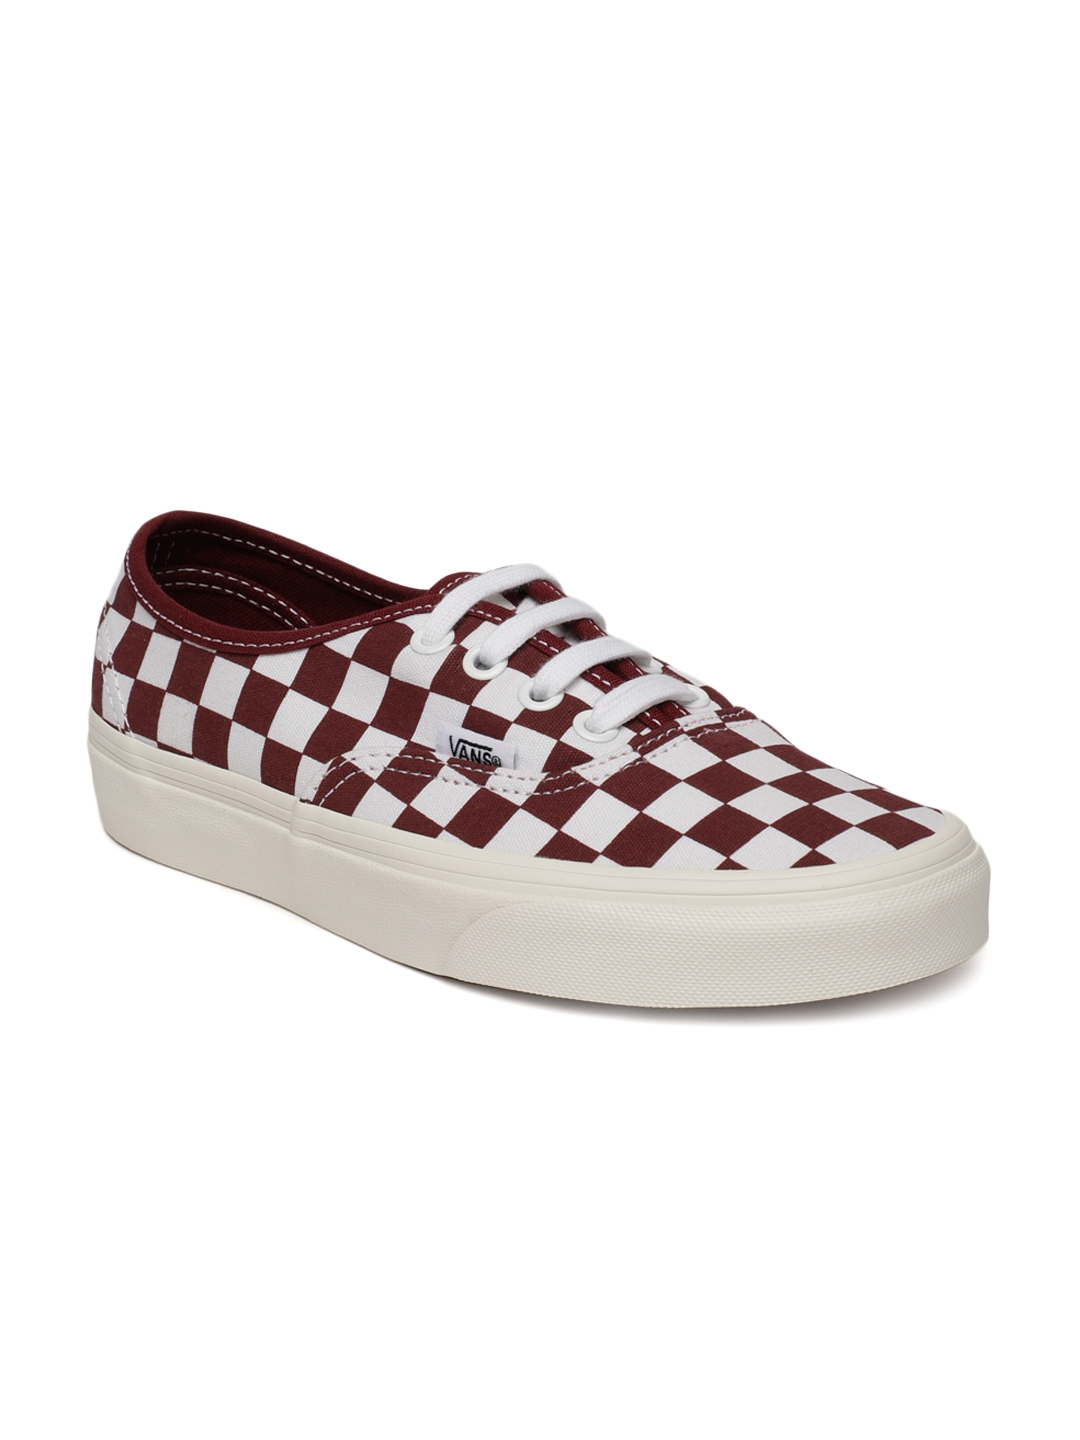 494a090796 Buy Vans Unisex Maroon   White Checked Authentic Sneakers - Casual ...